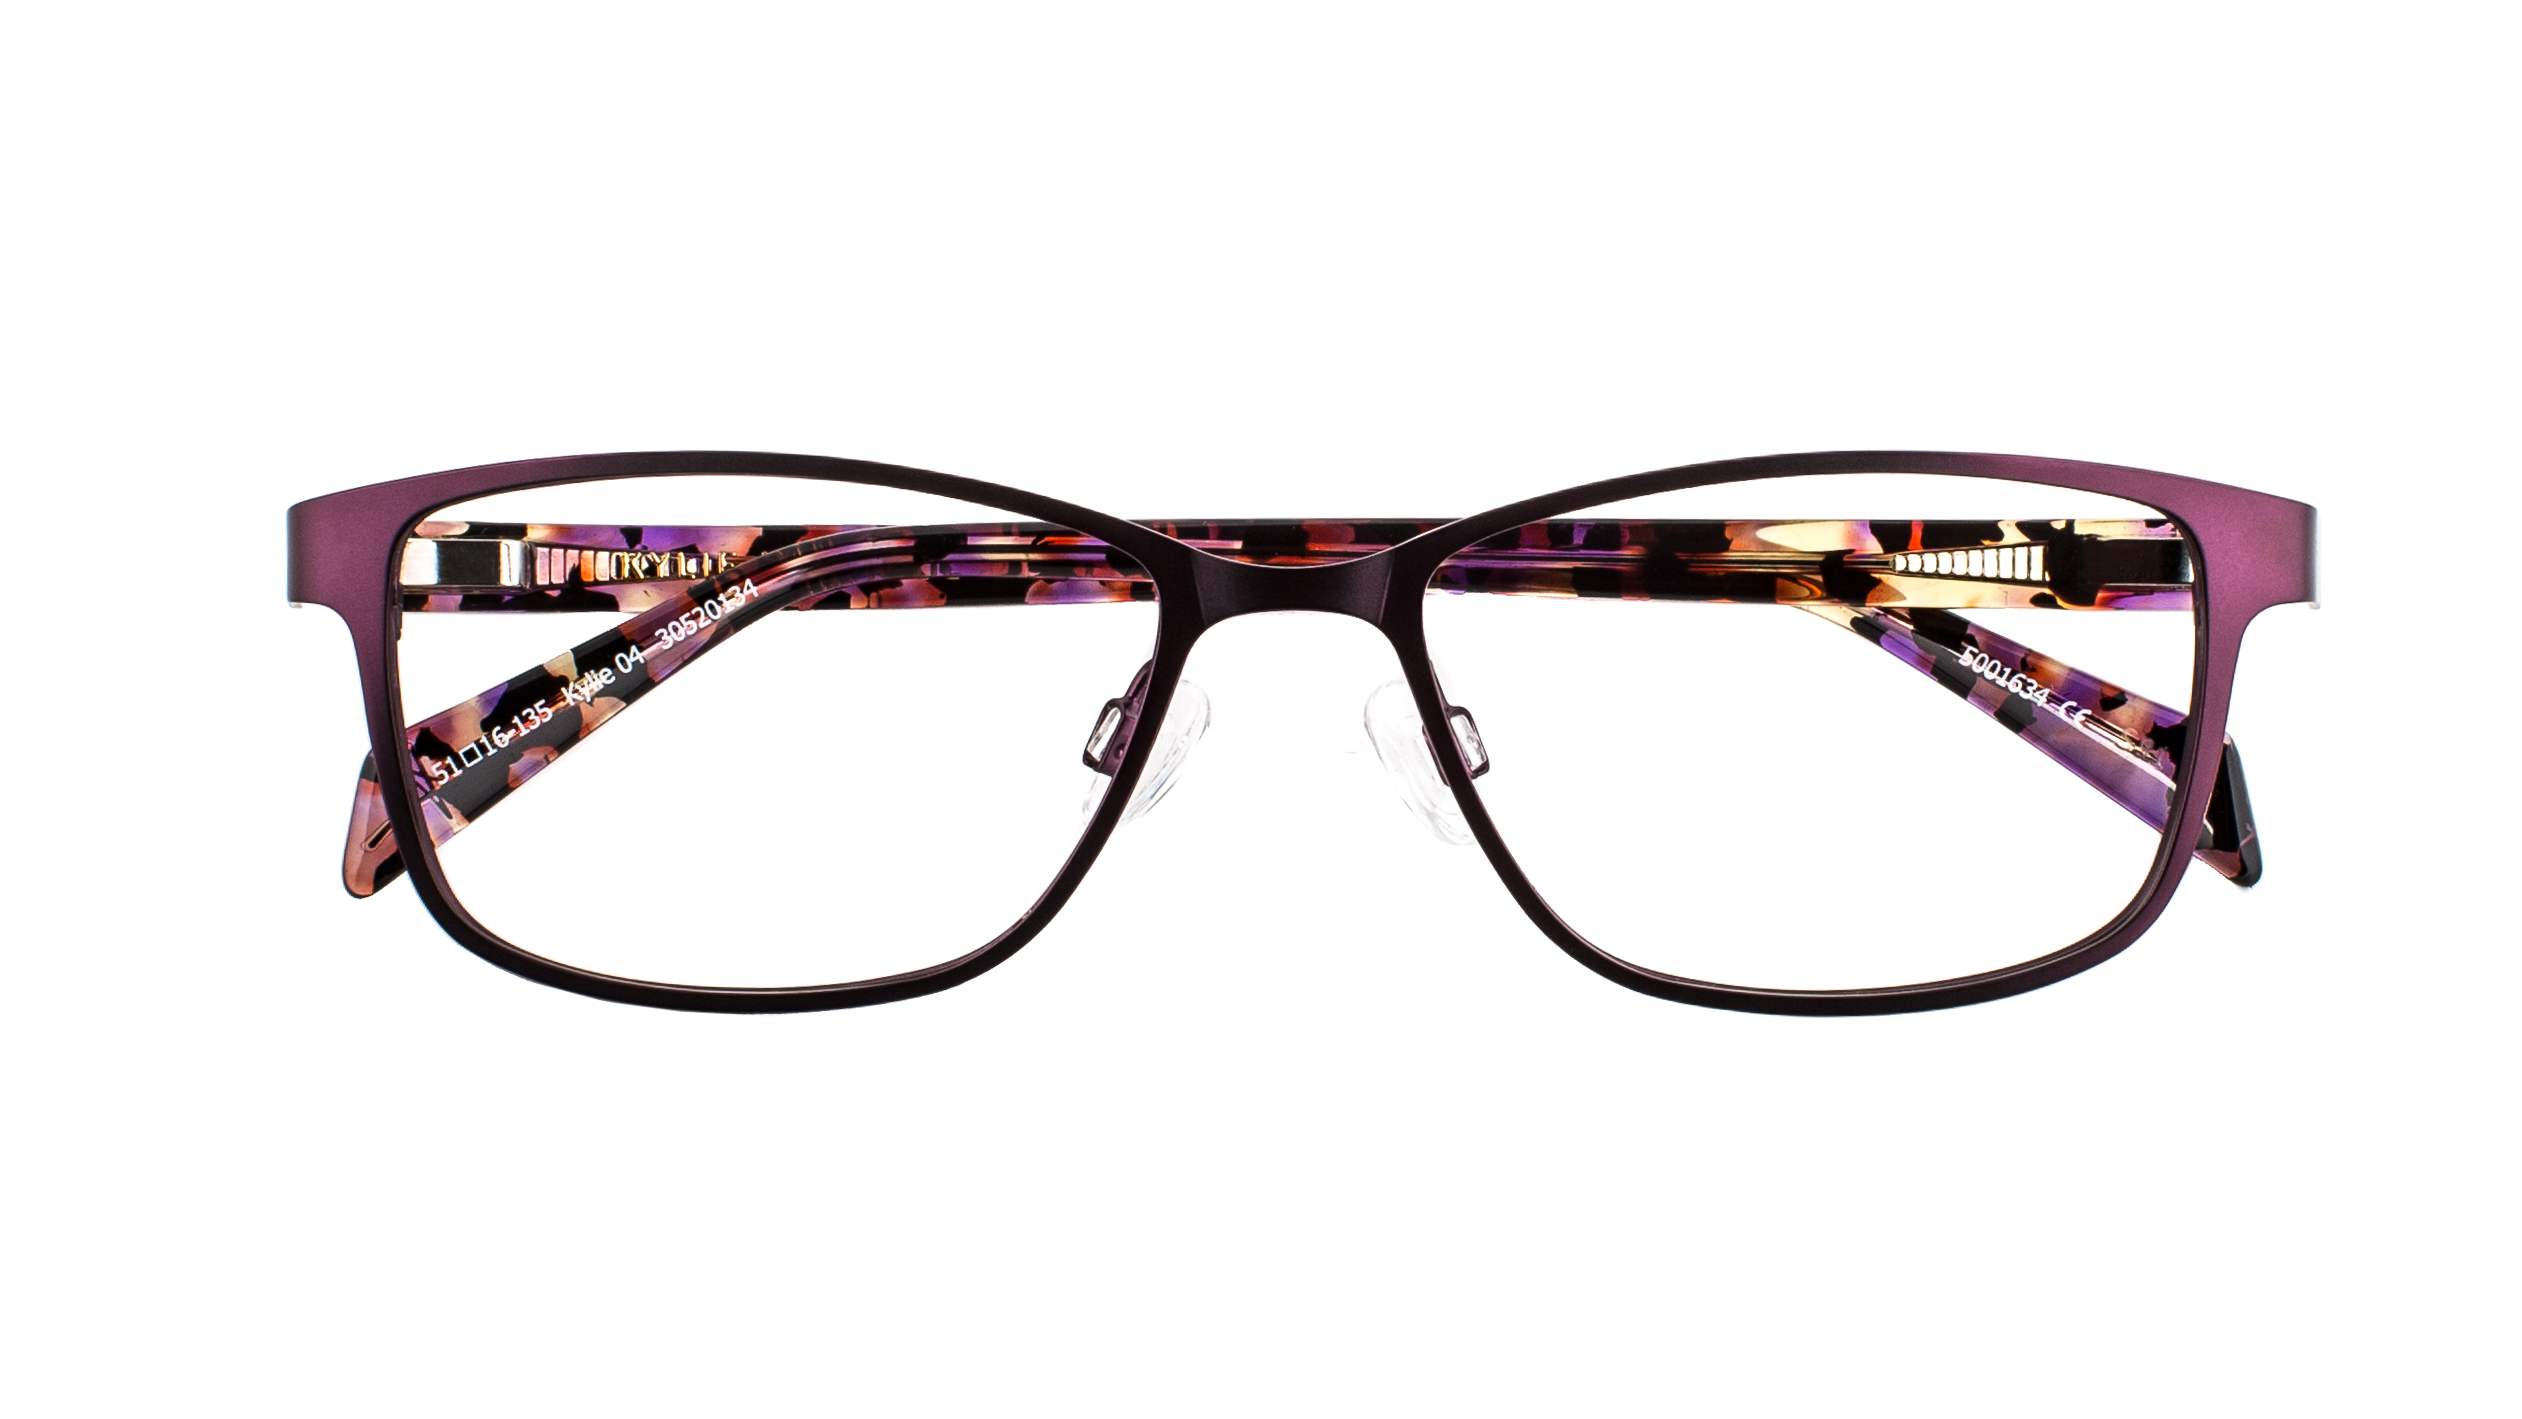 Kylie Minogue Eyewear_Kylie 04_SKU 30520134_RRP 2 pairs from $369